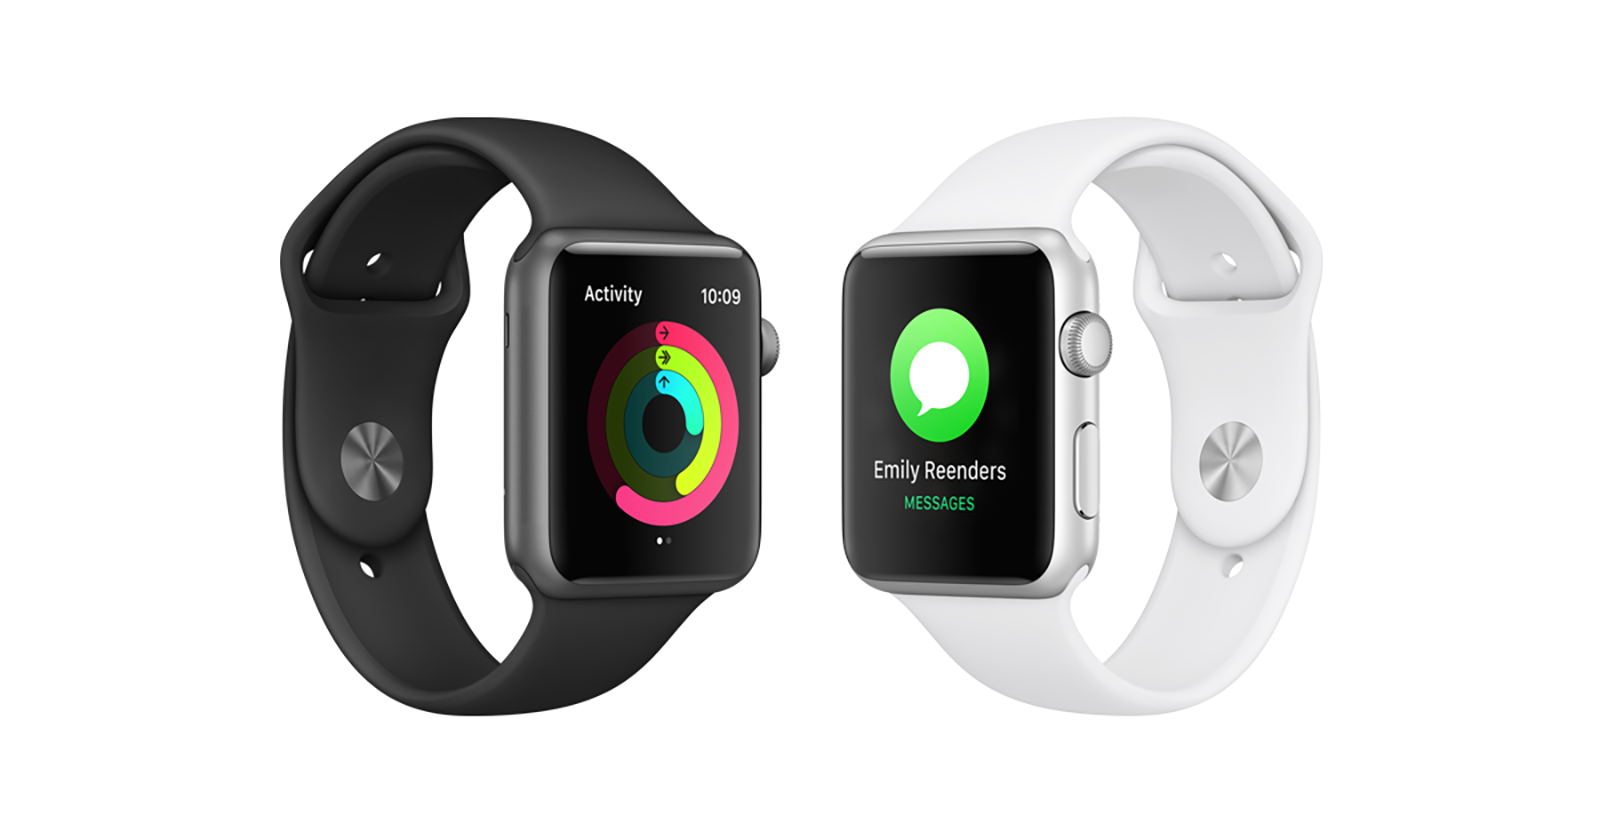 Target Offers Discounted Apple Watch Series 1 Models